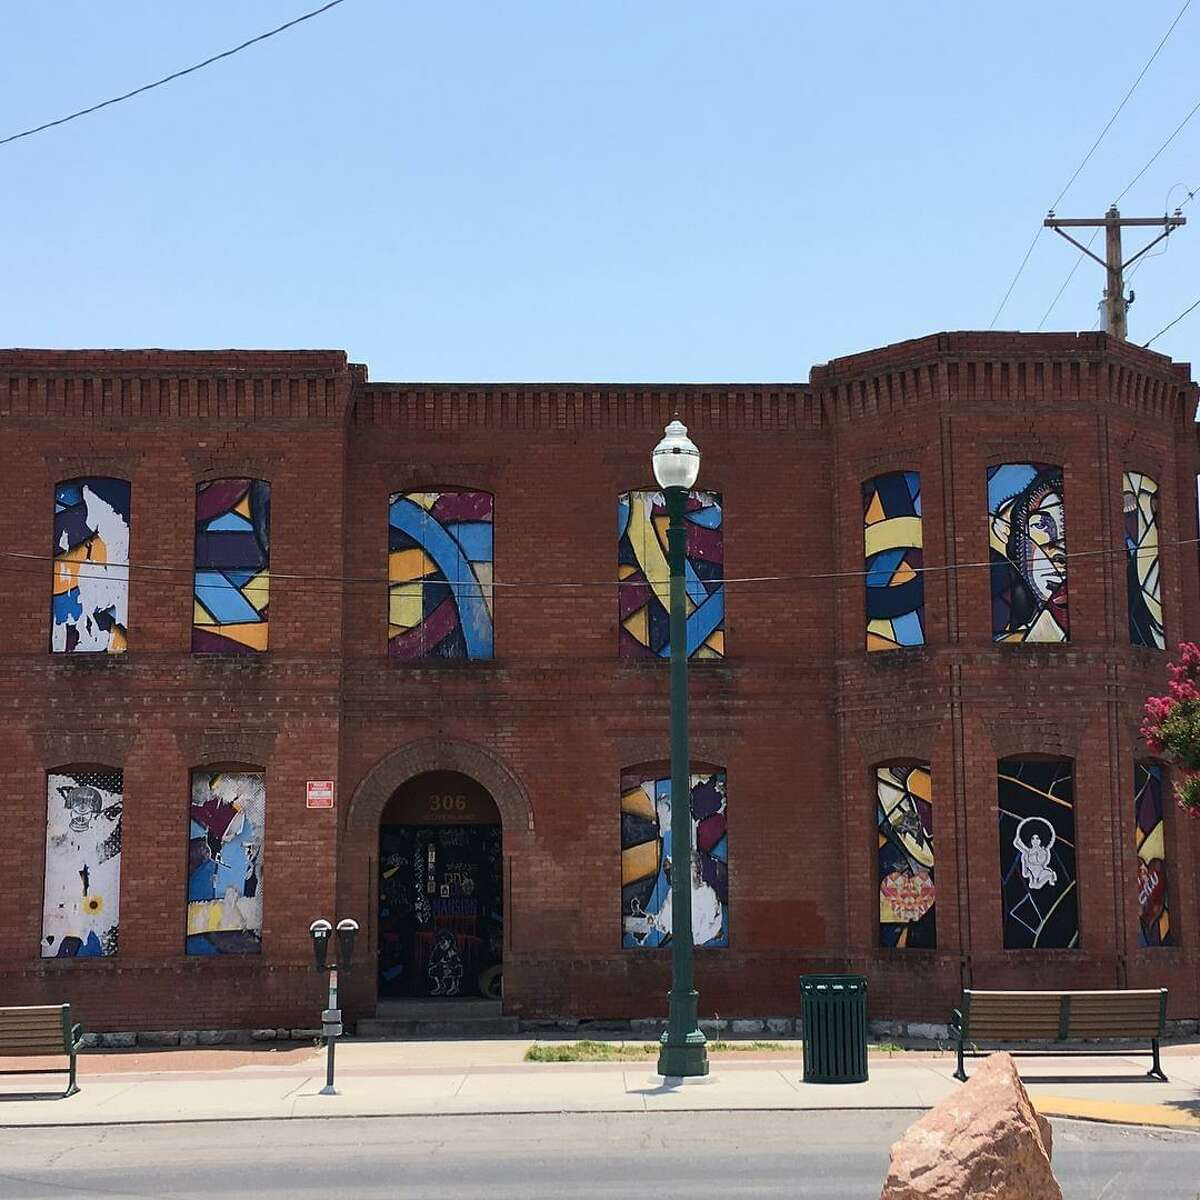 The Duranguito neighborhood in El Paso is one of the places recommended for designation as a heritage and historic site.